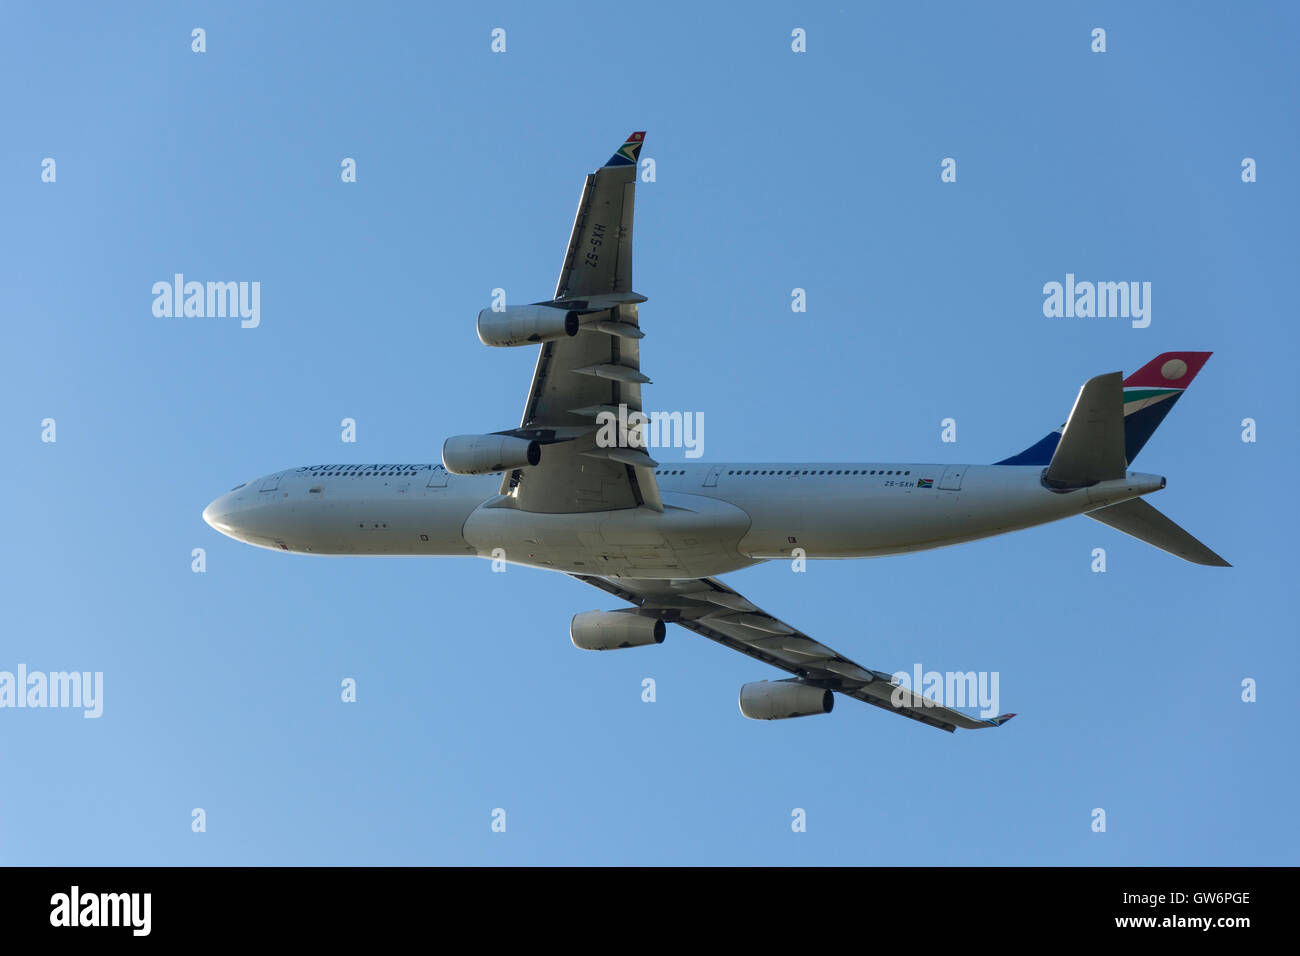 South African Airways Airbus A340-313 aircraft taking off from Heathrow Airport, Greater London, England, United Stock Photo